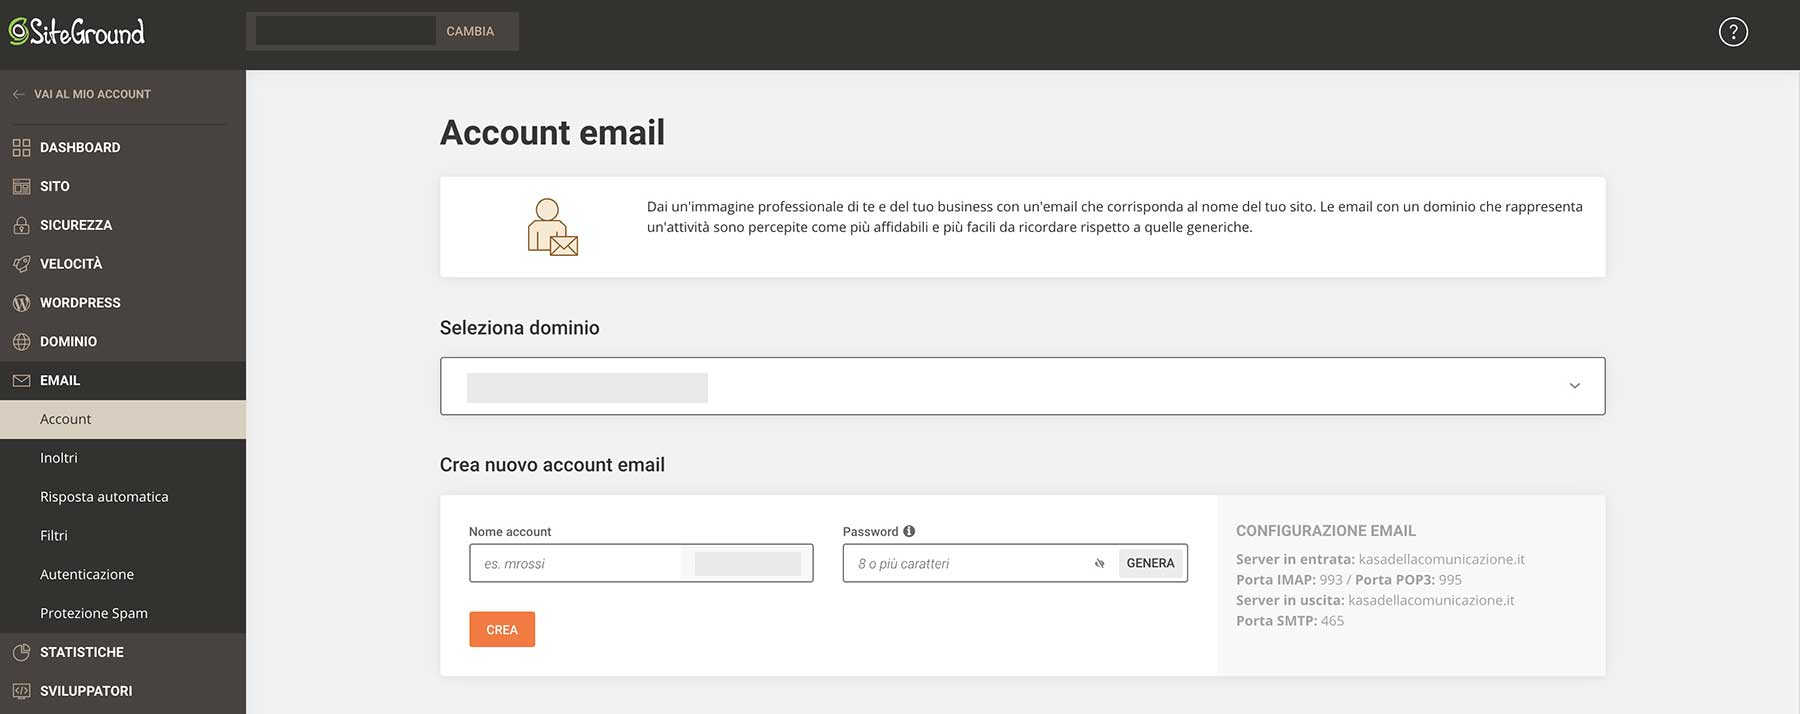 account email site tools